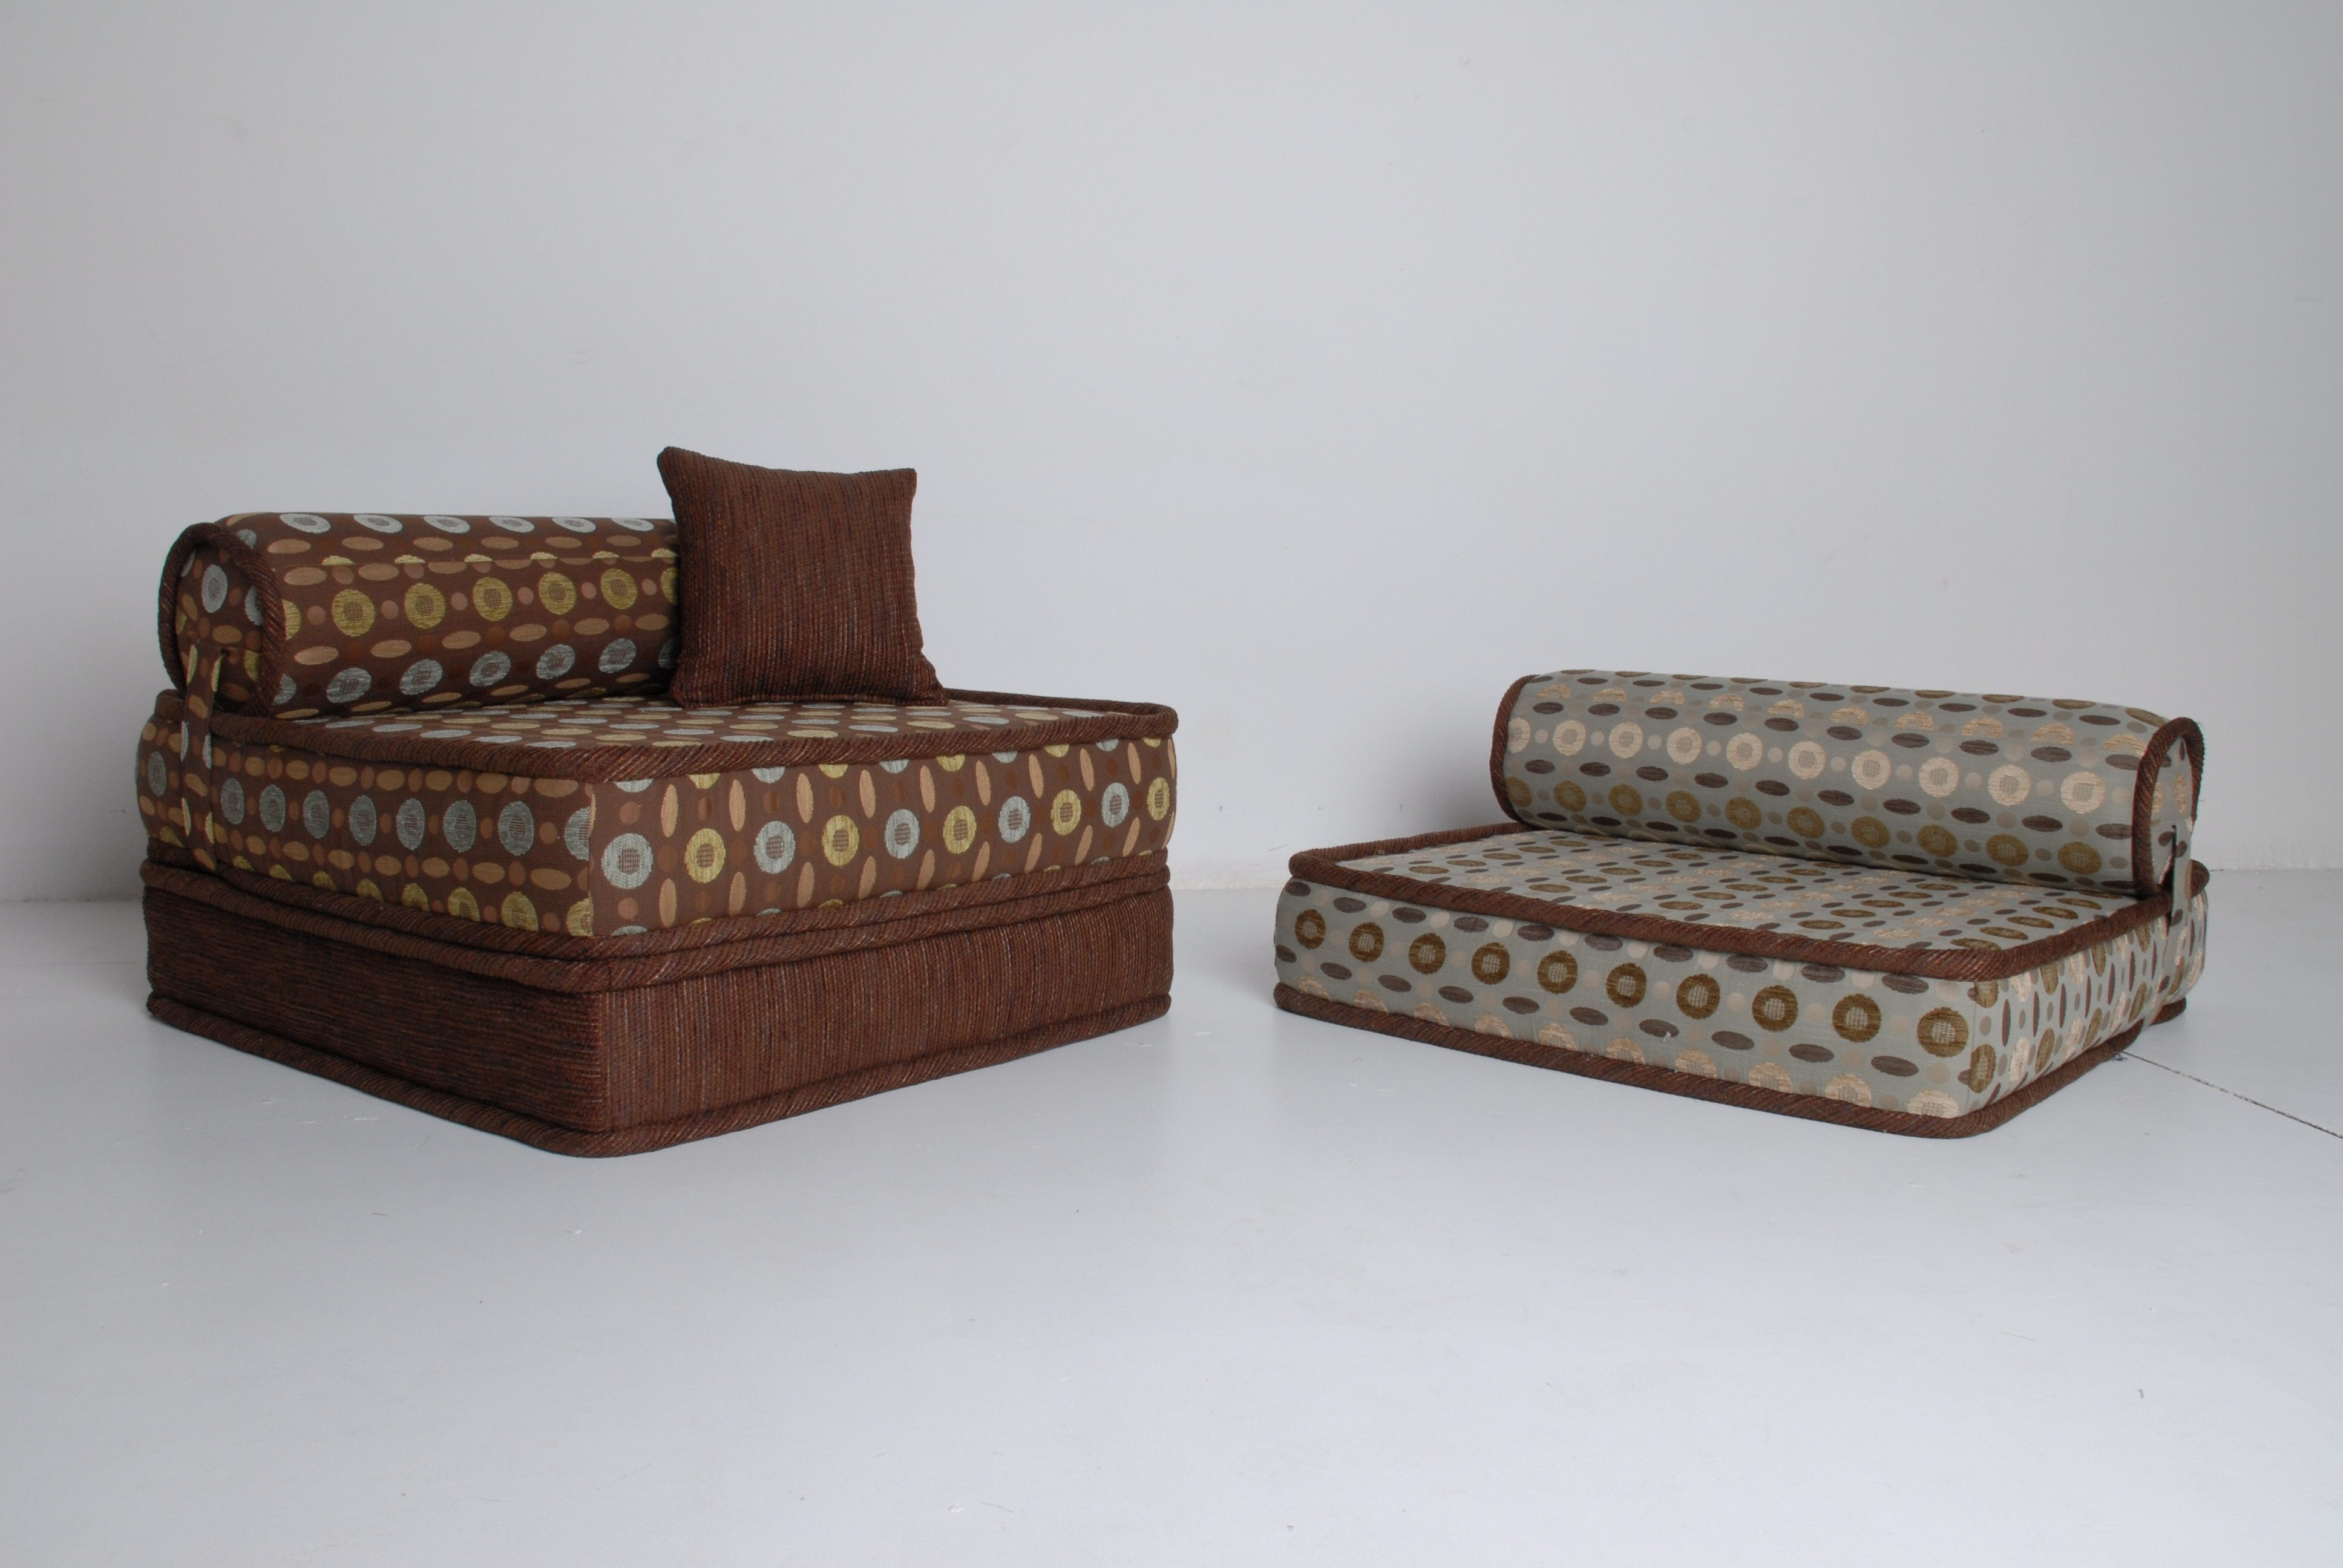 Floor Seating Ideas A New And Unusual Detail In Your Interior Within Moroccan Floor Seating Furniture (Image 7 of 15)